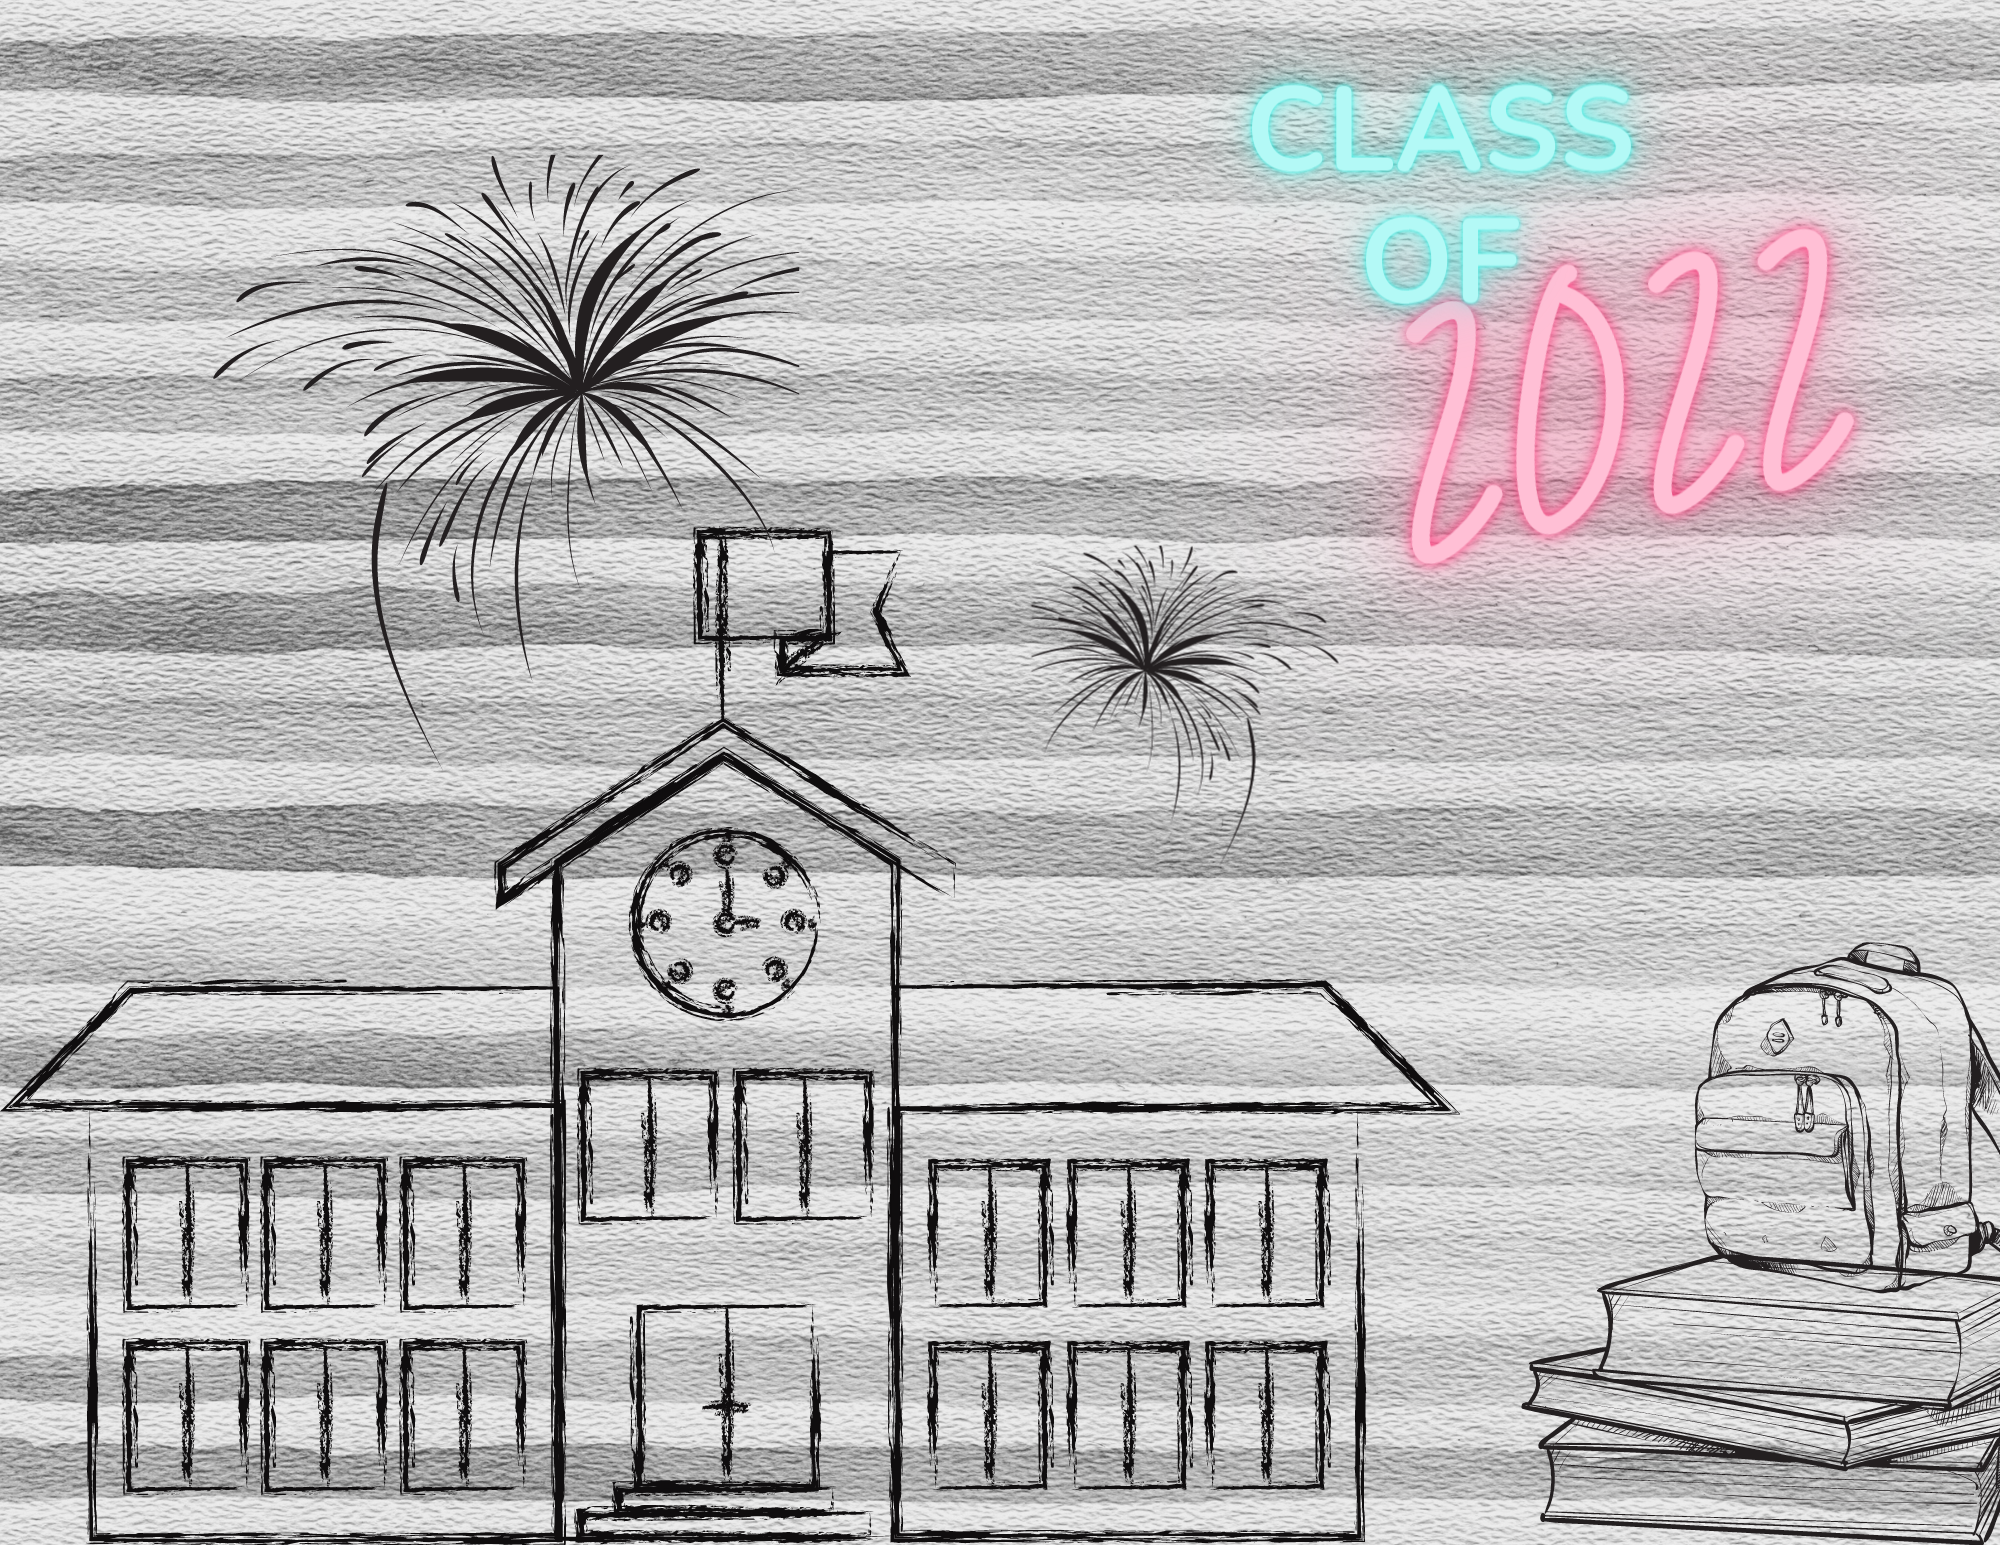 """Photo edit of a school with fireworks above it, a backpack, and neon lettering that says """"Class of 2022."""" Edit by the author."""